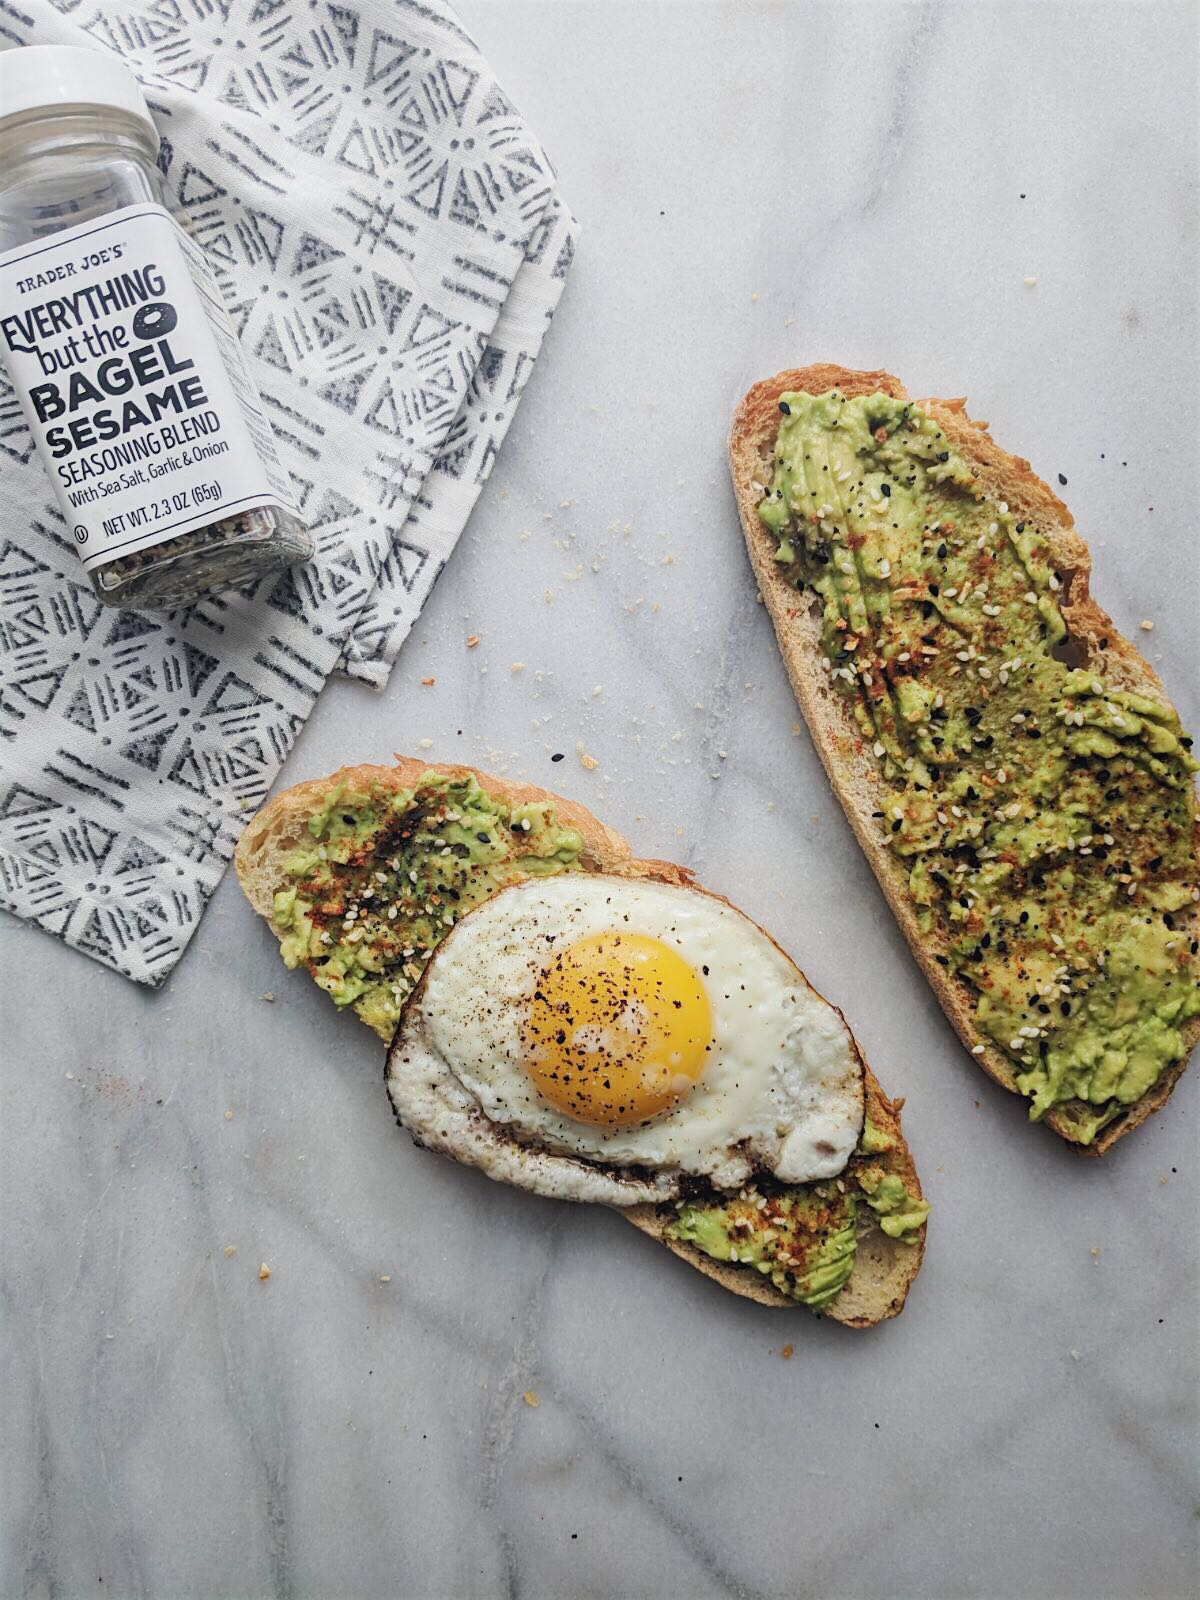 everything but the bagel avocado toast with the seasoning photo